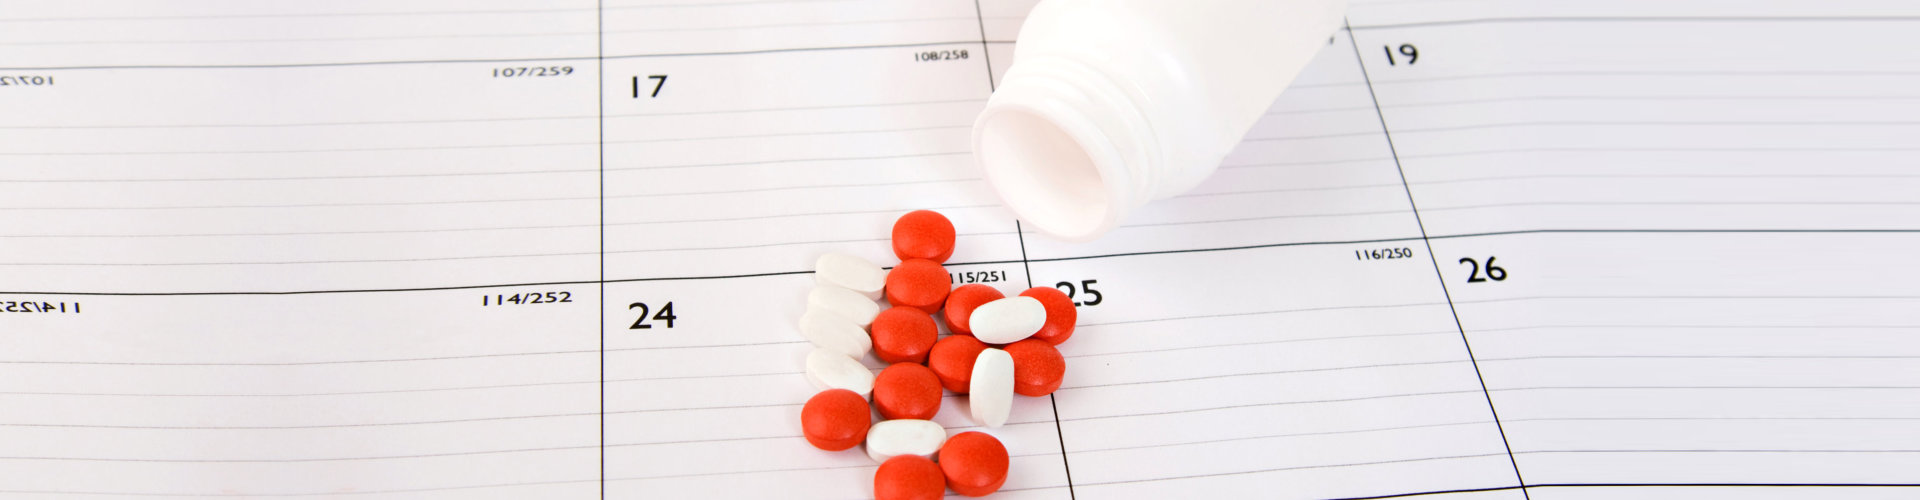 red and white pills placed on a calendar